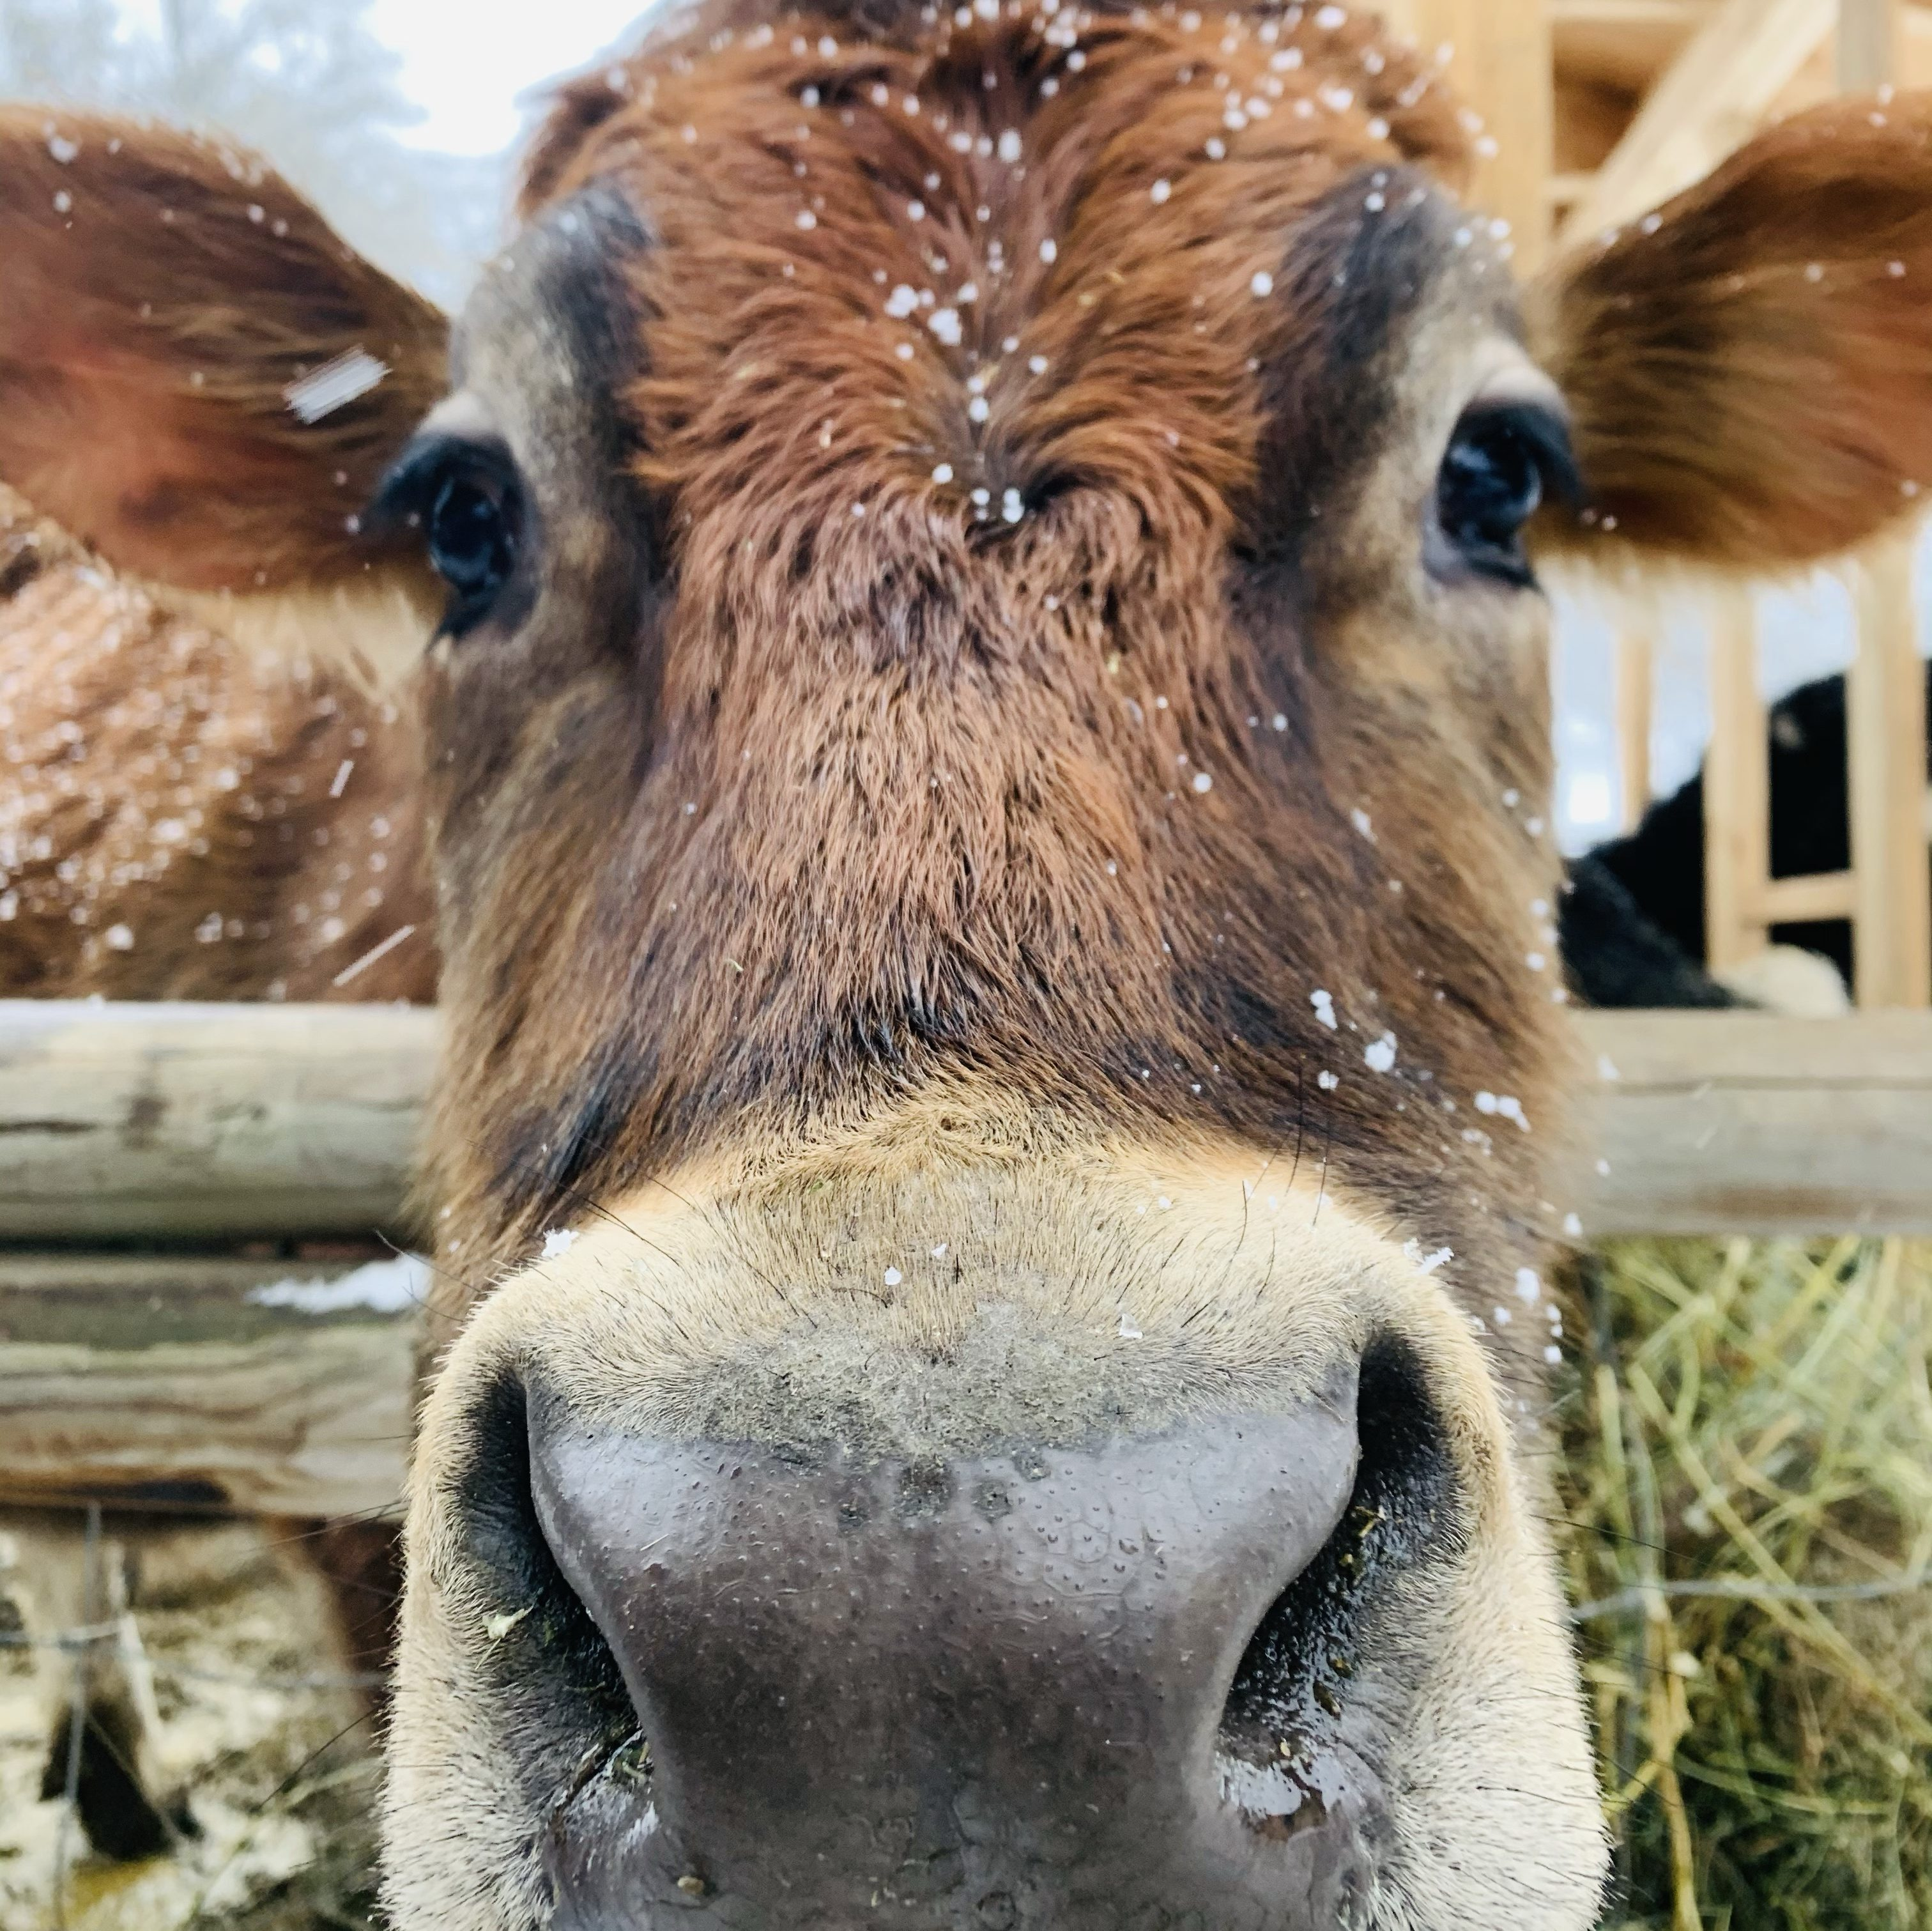 Close up photo of jersey cow with snow flakes on his head